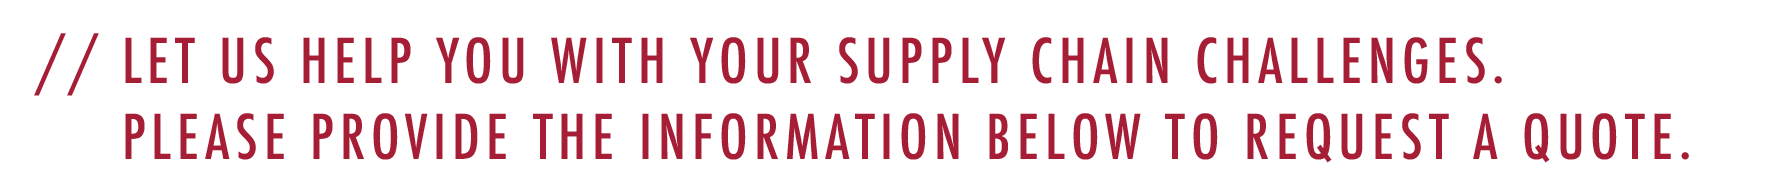 Let us help you with your supply chain challenges. Please provide the information below to request a quote.